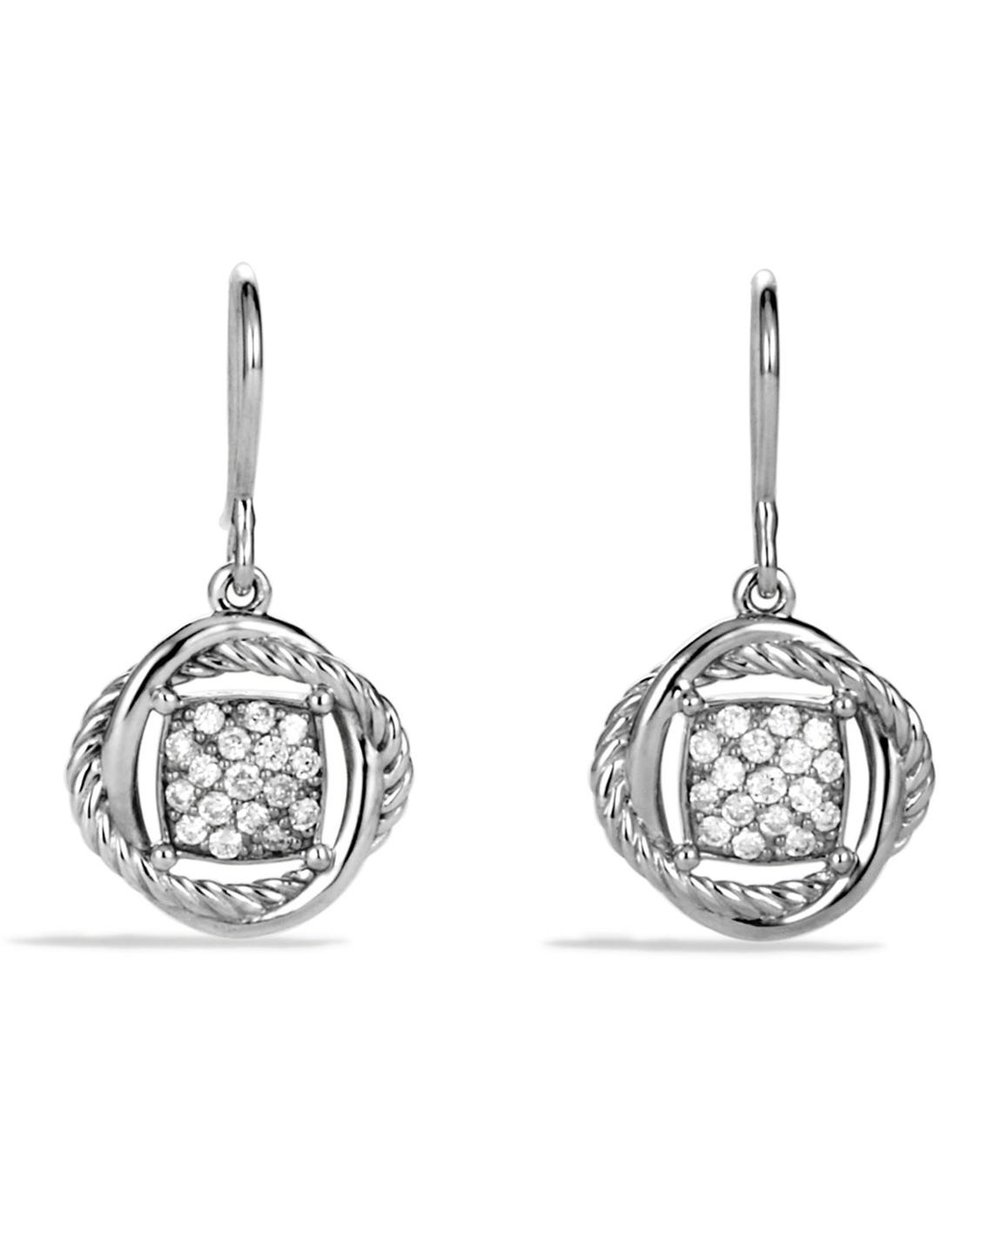 david-yurman-infinity-earrings-with-diamonds-screen.jpg